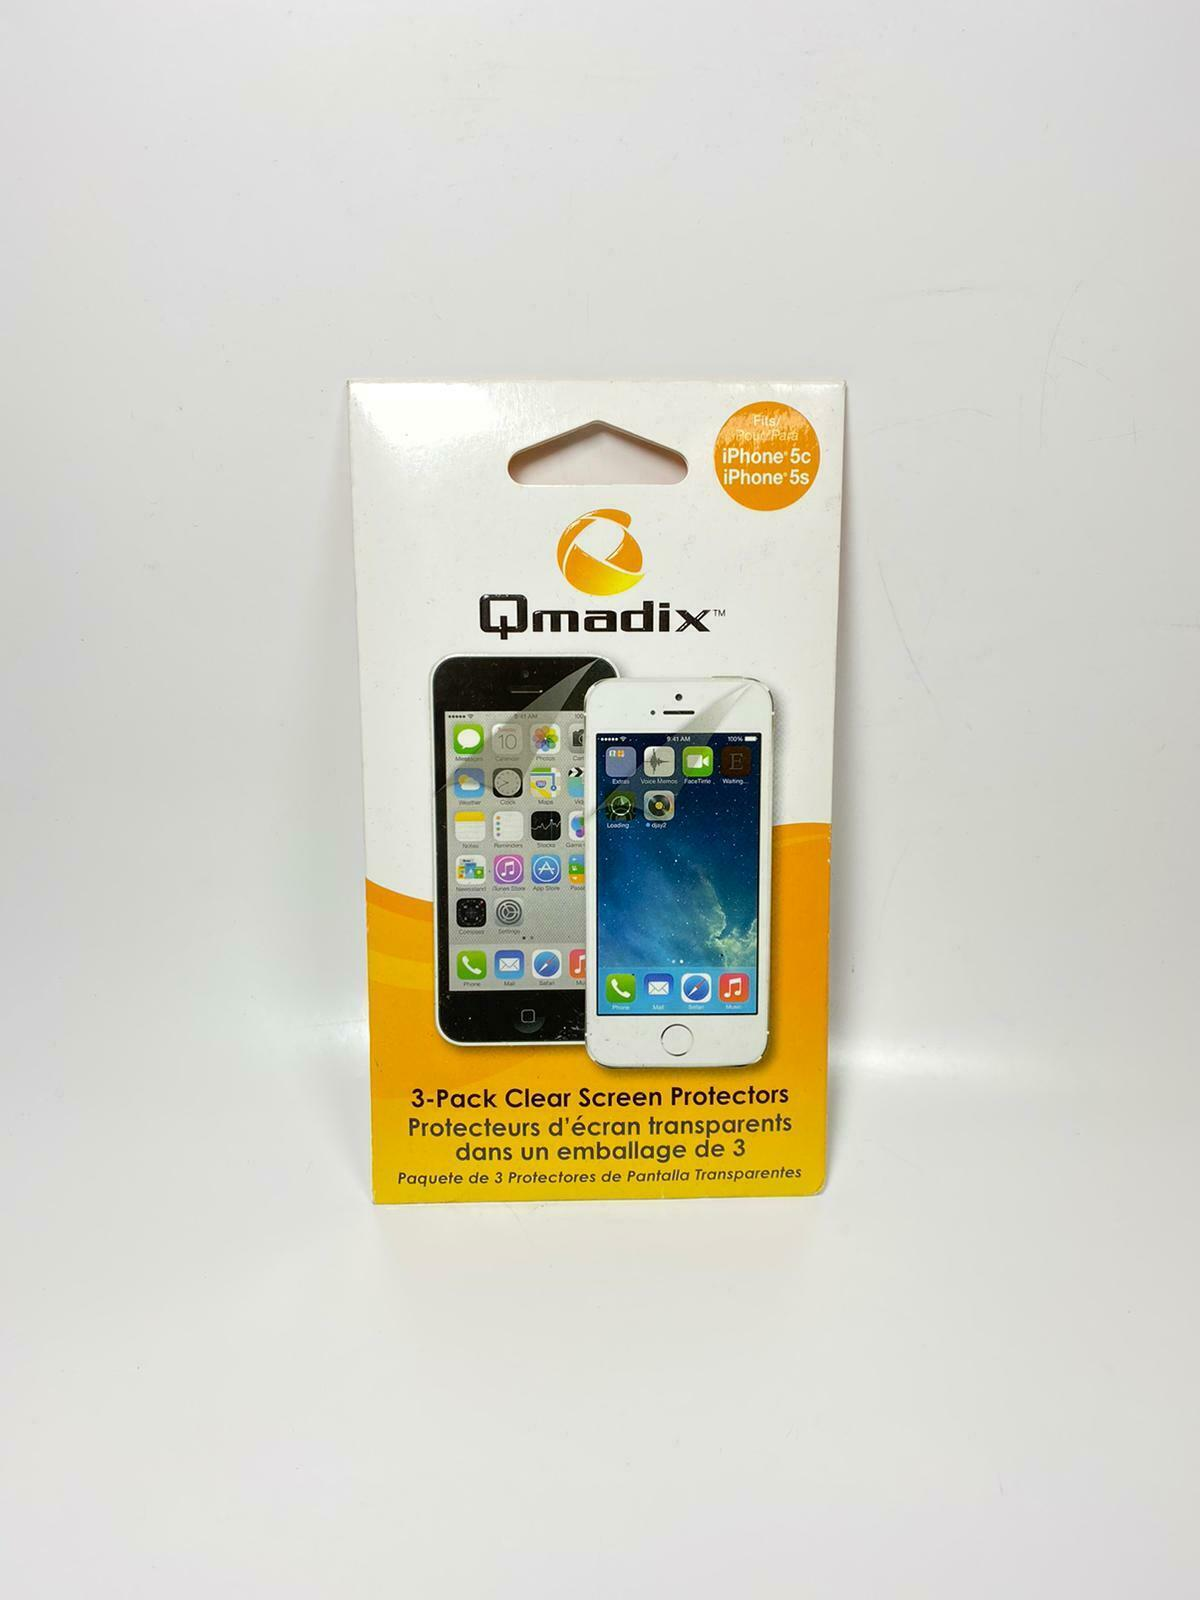 Primary image for Qmadix 3-Pack Clear Screen Protectors for iPhone5/5s/5c